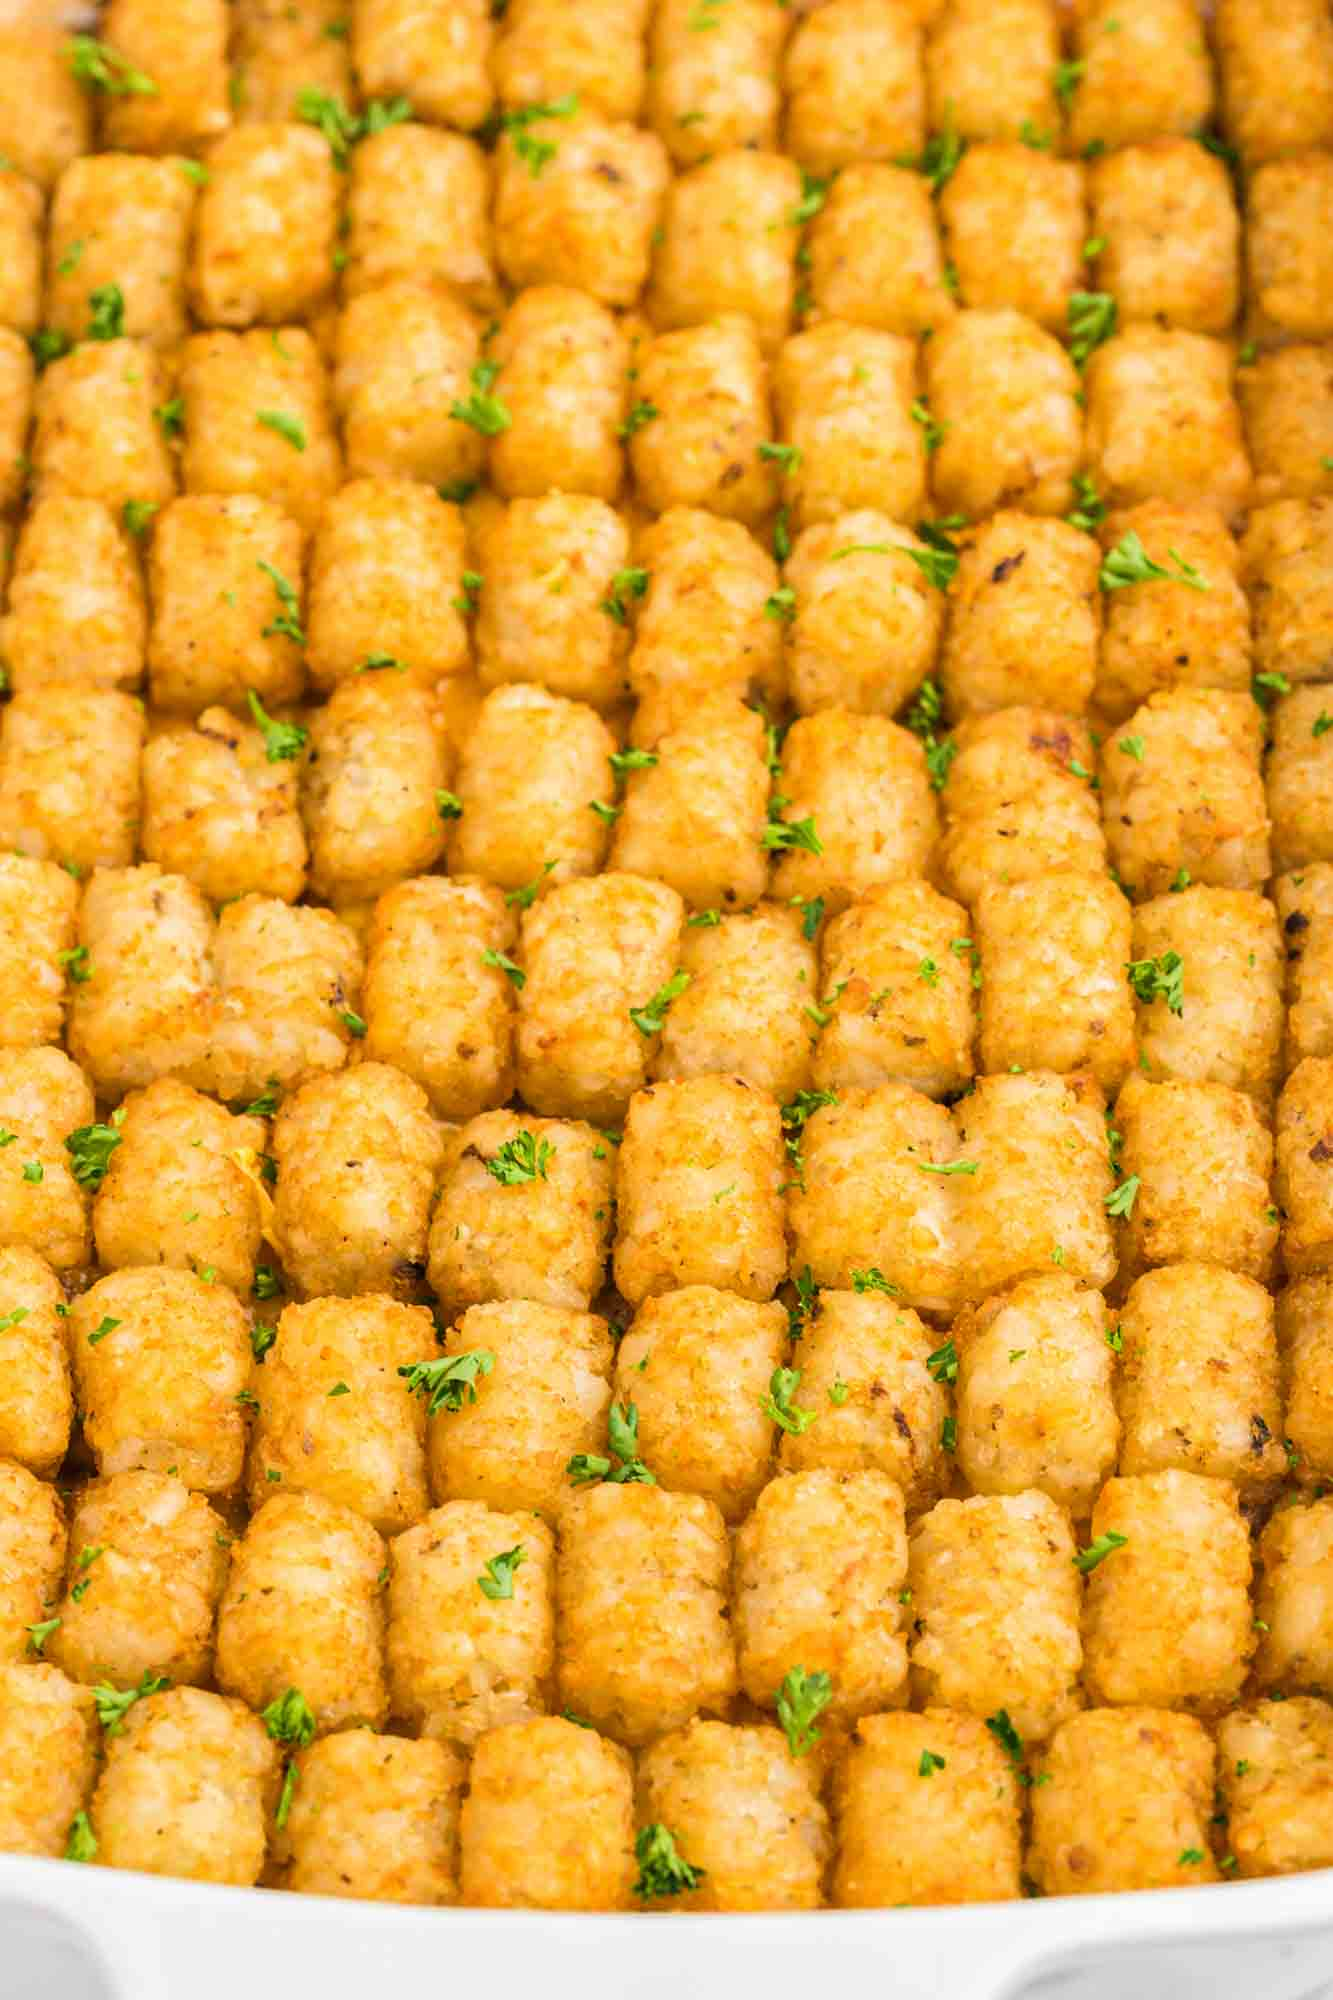 Overhead shot of a tater tot casserole featuring the arranged tater tots